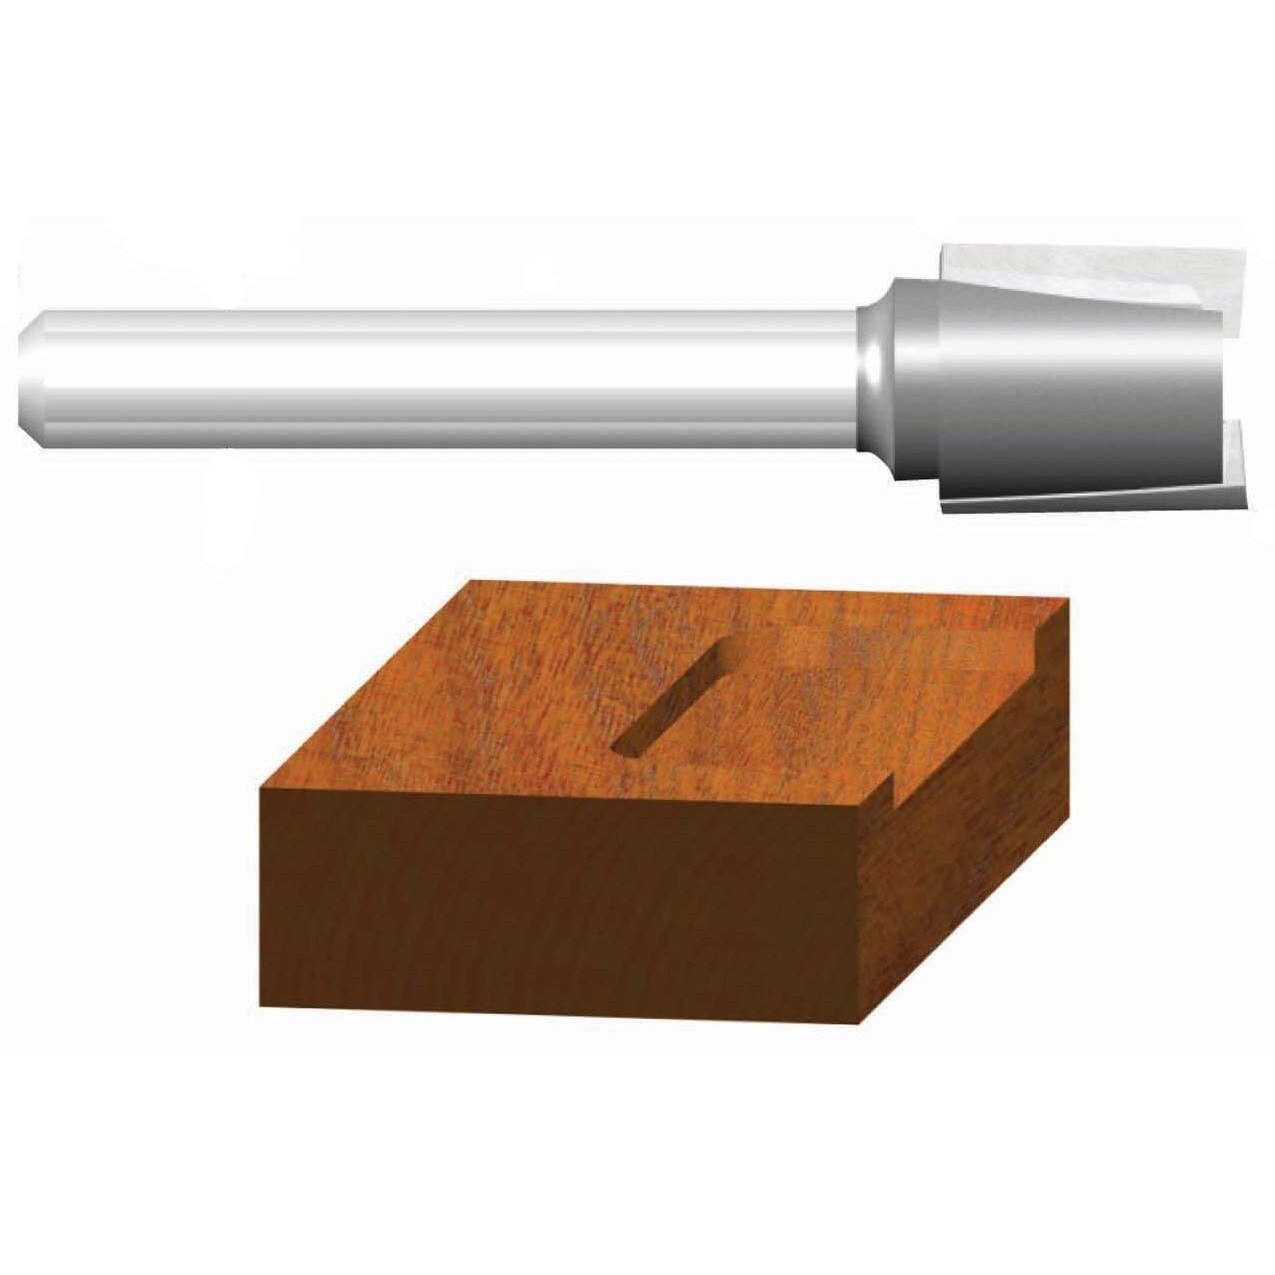 Vermont American 23112 0.75-inch Mortising Bit (Power too...